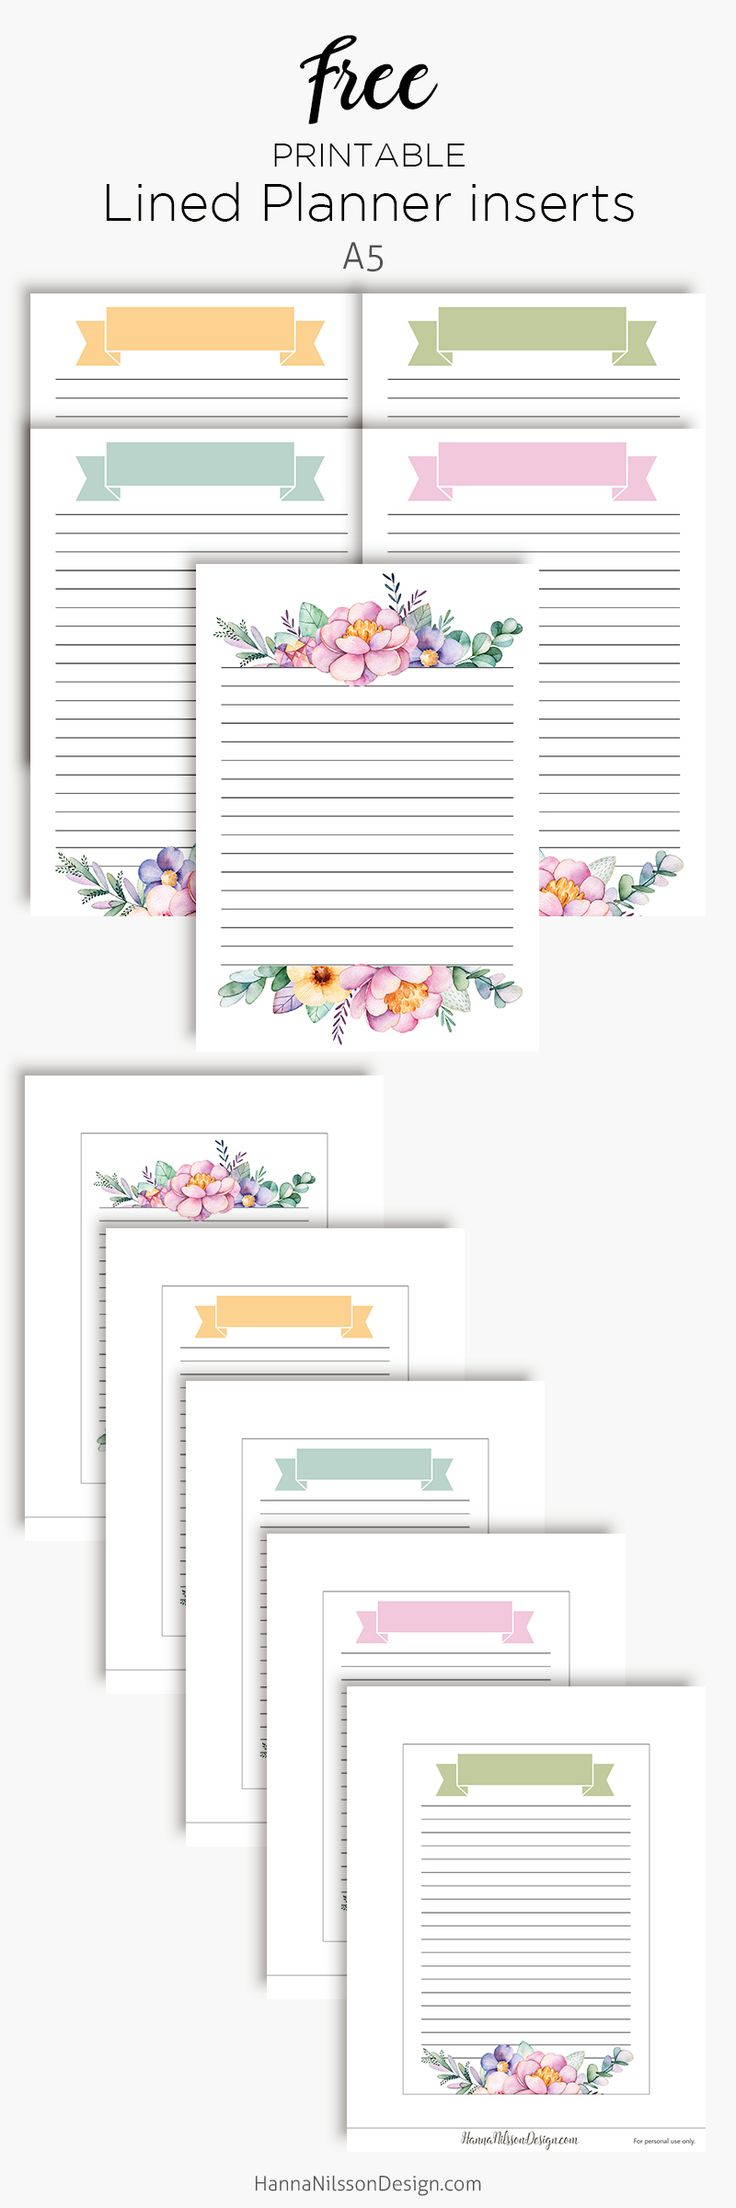 Free Printable Lined Floral Planner Inserts | A5 planner | Personal Filofax {subscription required}